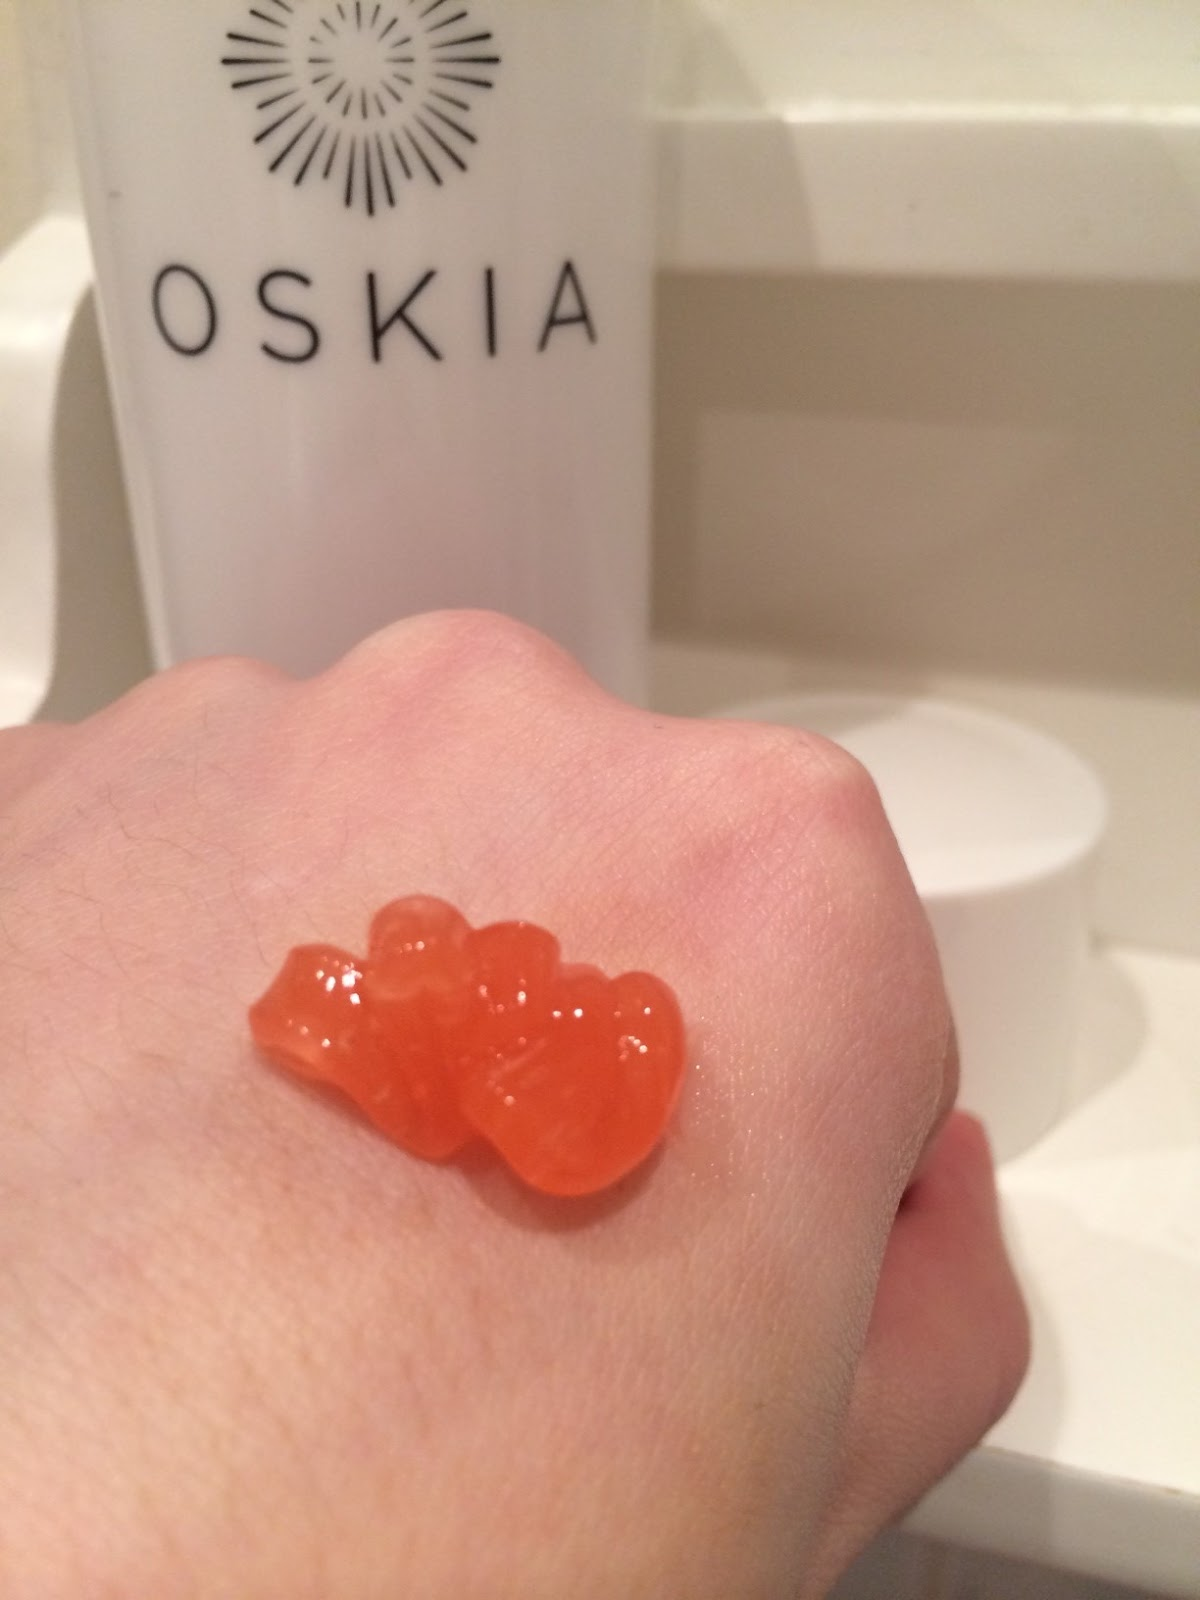 OSKIA Renaissance Cleansing Gel Review